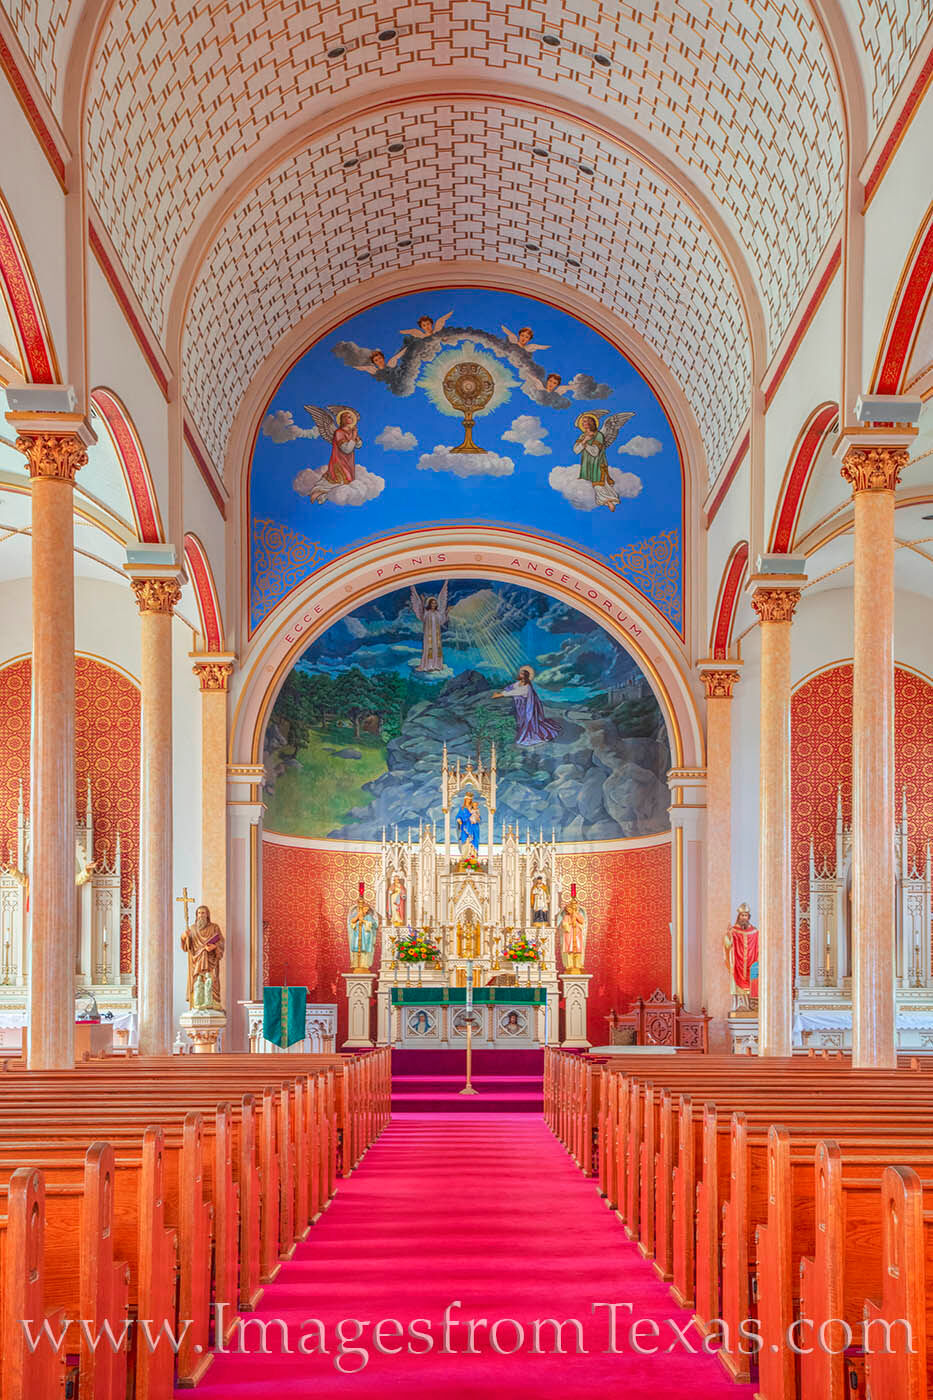 As one of the highlights of Saint Cyrl and Methodius Catholic Church in Shiner, Texas, the mural featuring the Garden of Gethsemane...